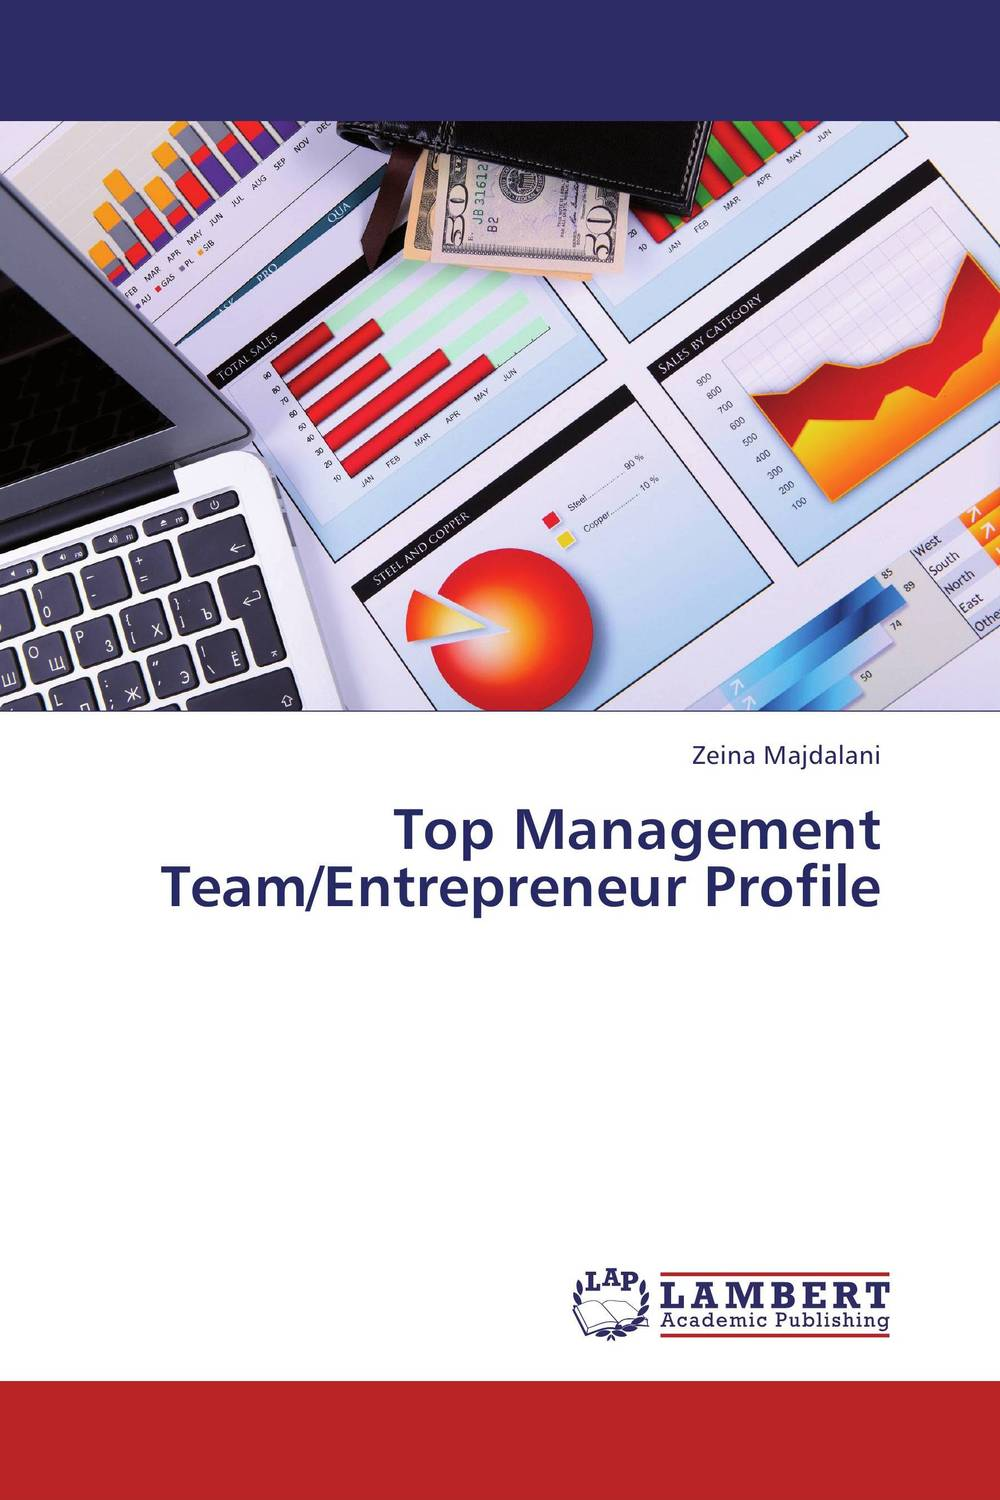 Top Management Team/Entrepreneur Profile alexander haislip essentials of venture capital